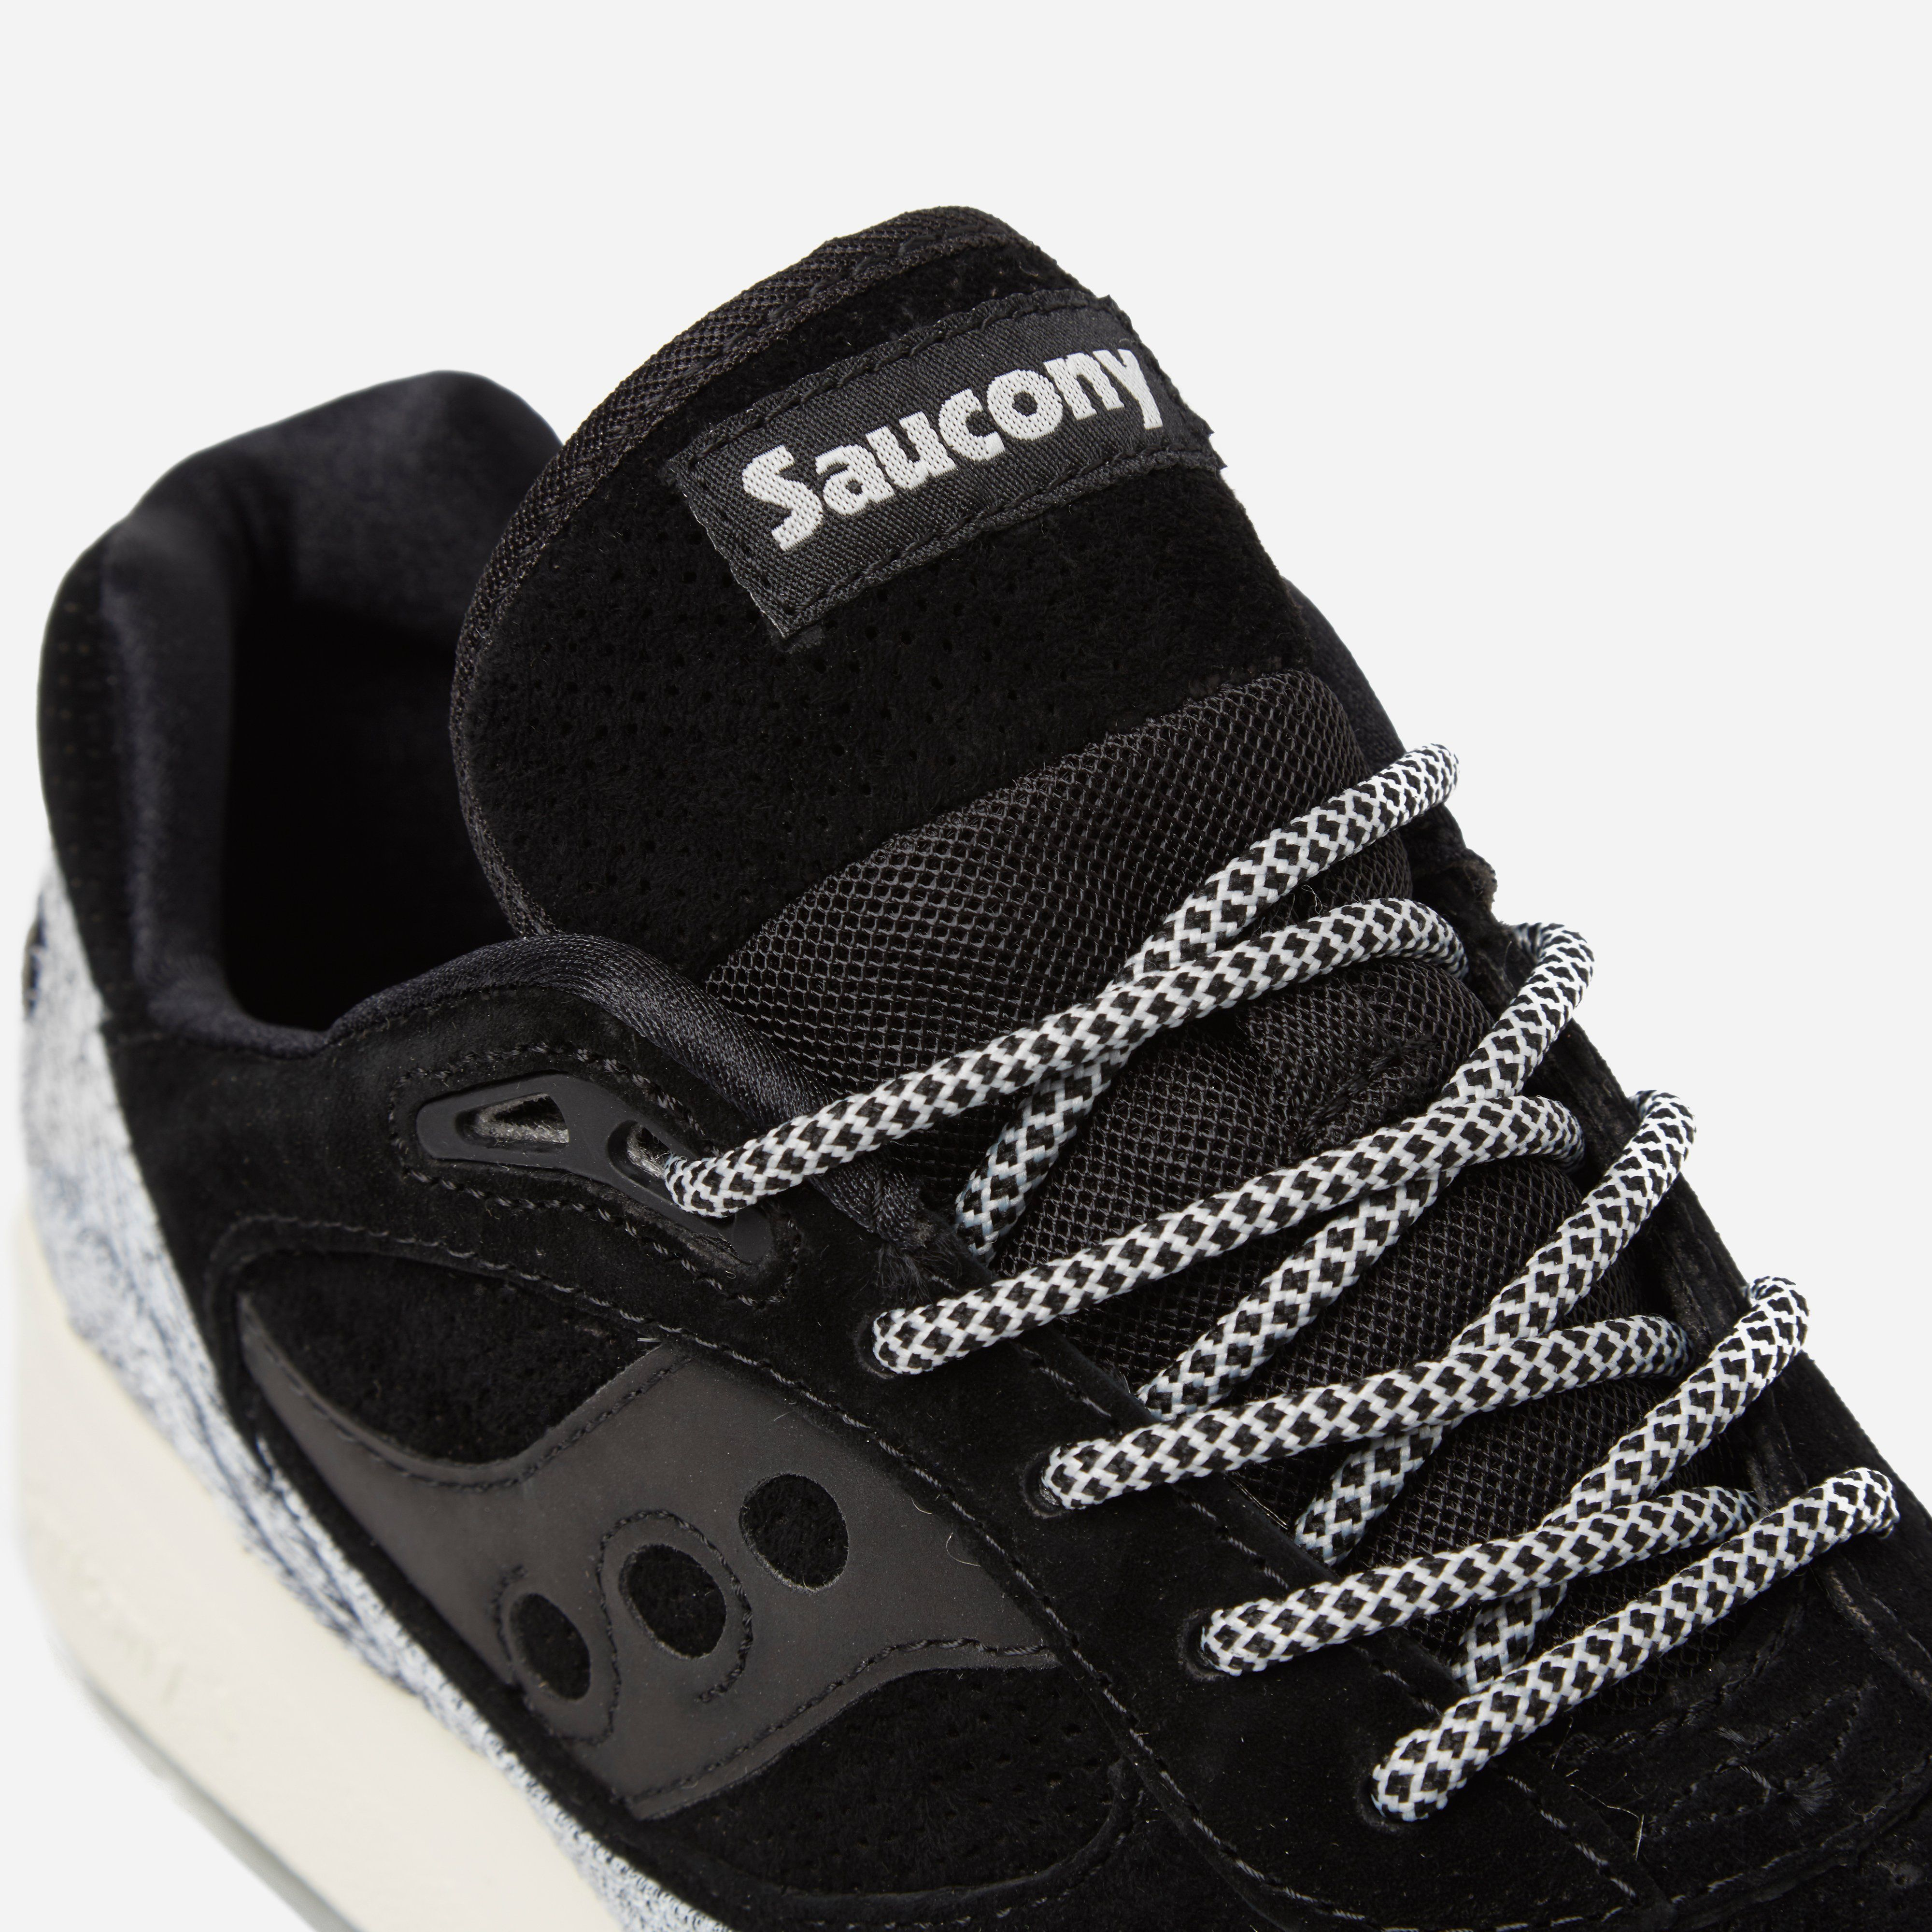 Saucony Shadow 6000 Dirty Snow